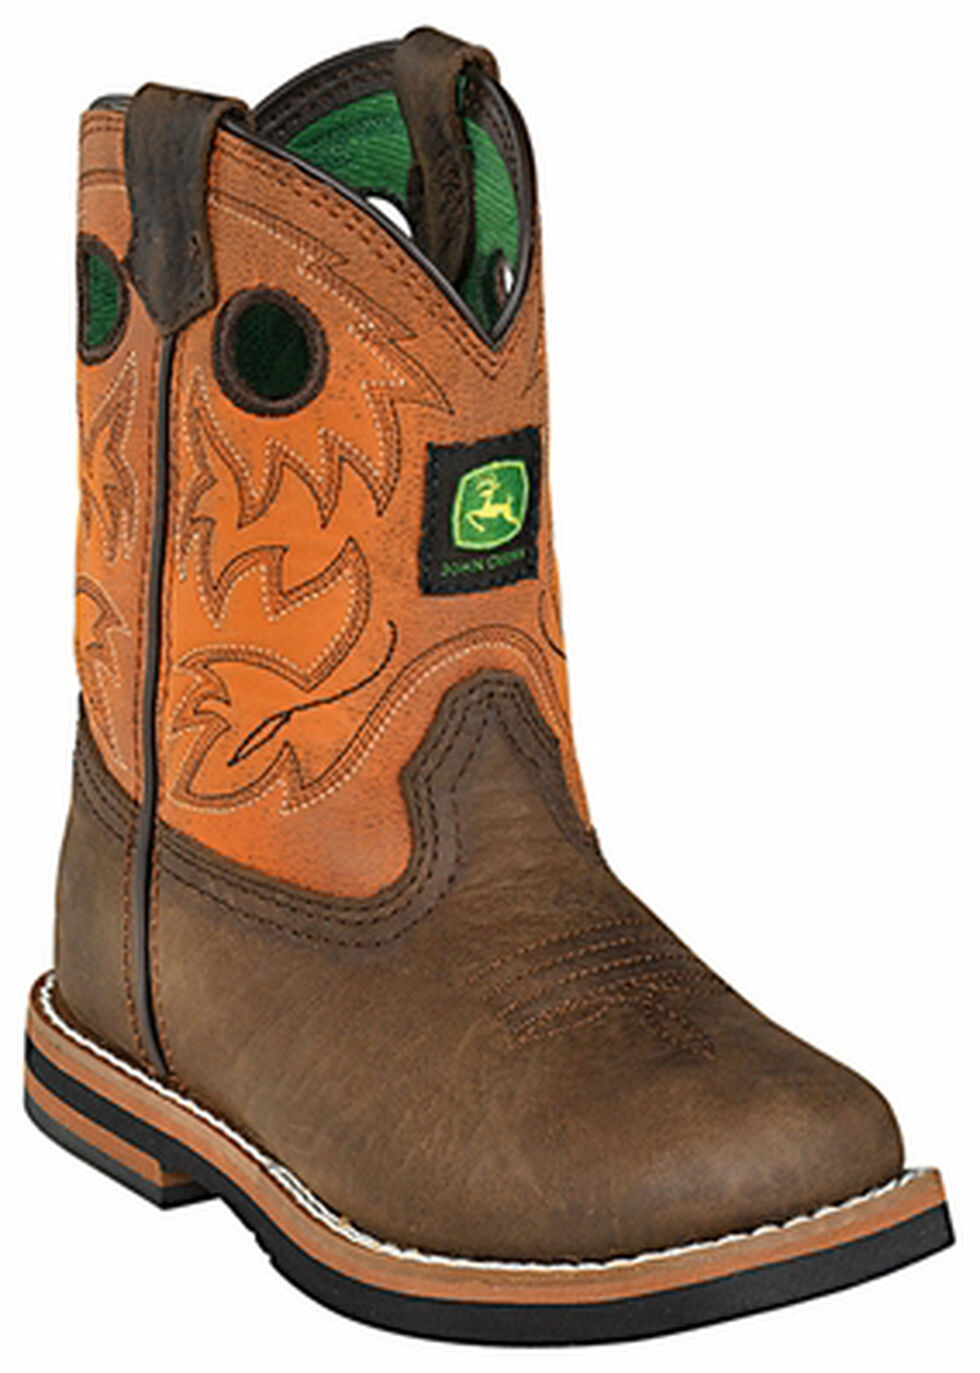 John Deere Toddler Boys' Johnny Popper Orange Western Boots - Square Toe, Brown, hi-res